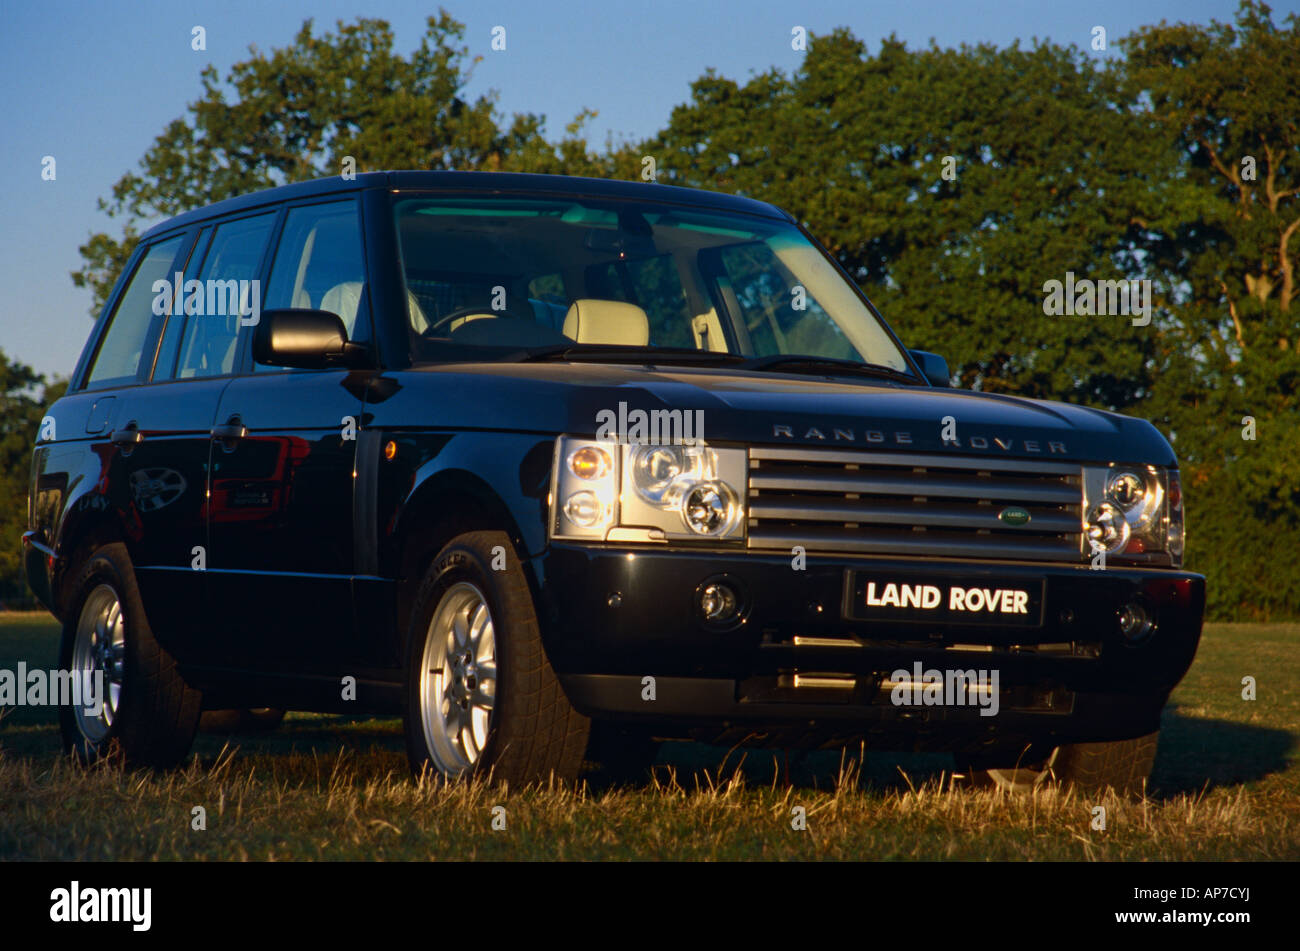 New Range Rover 3rd generation demonstrator on display at the Dunsfold Collection of Landrovers Open Day 2003, Surrey - Stock Image